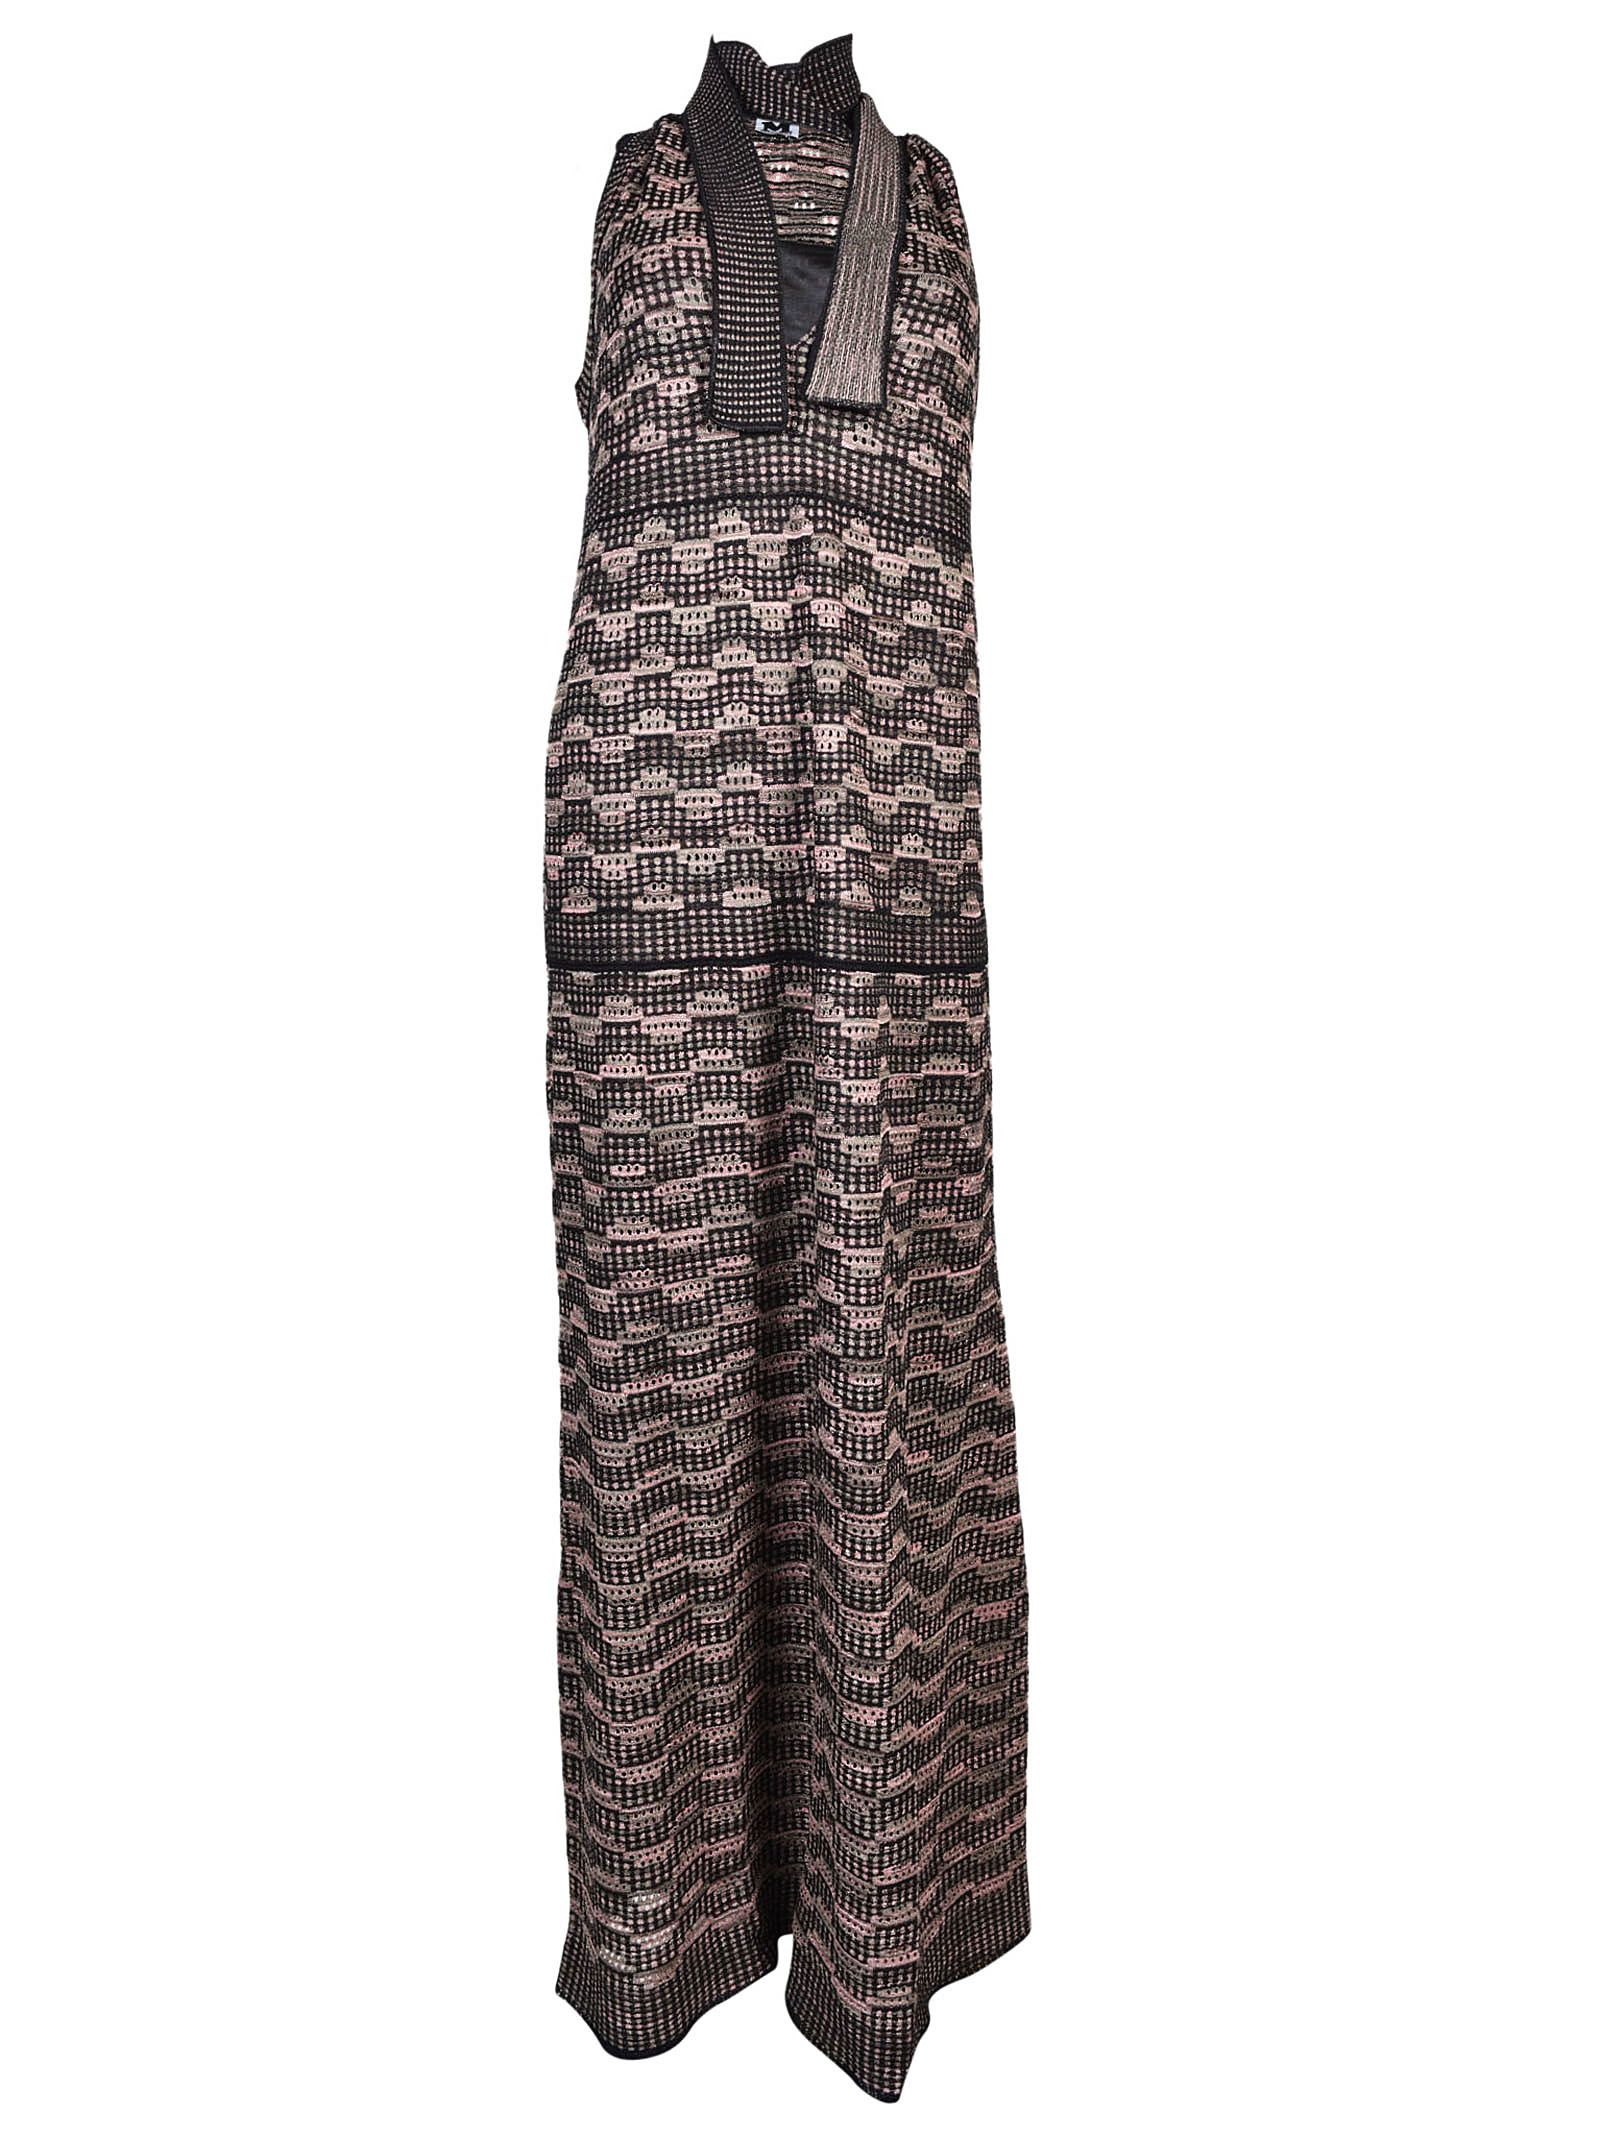 M Missoni Lace-Up Detail Dress